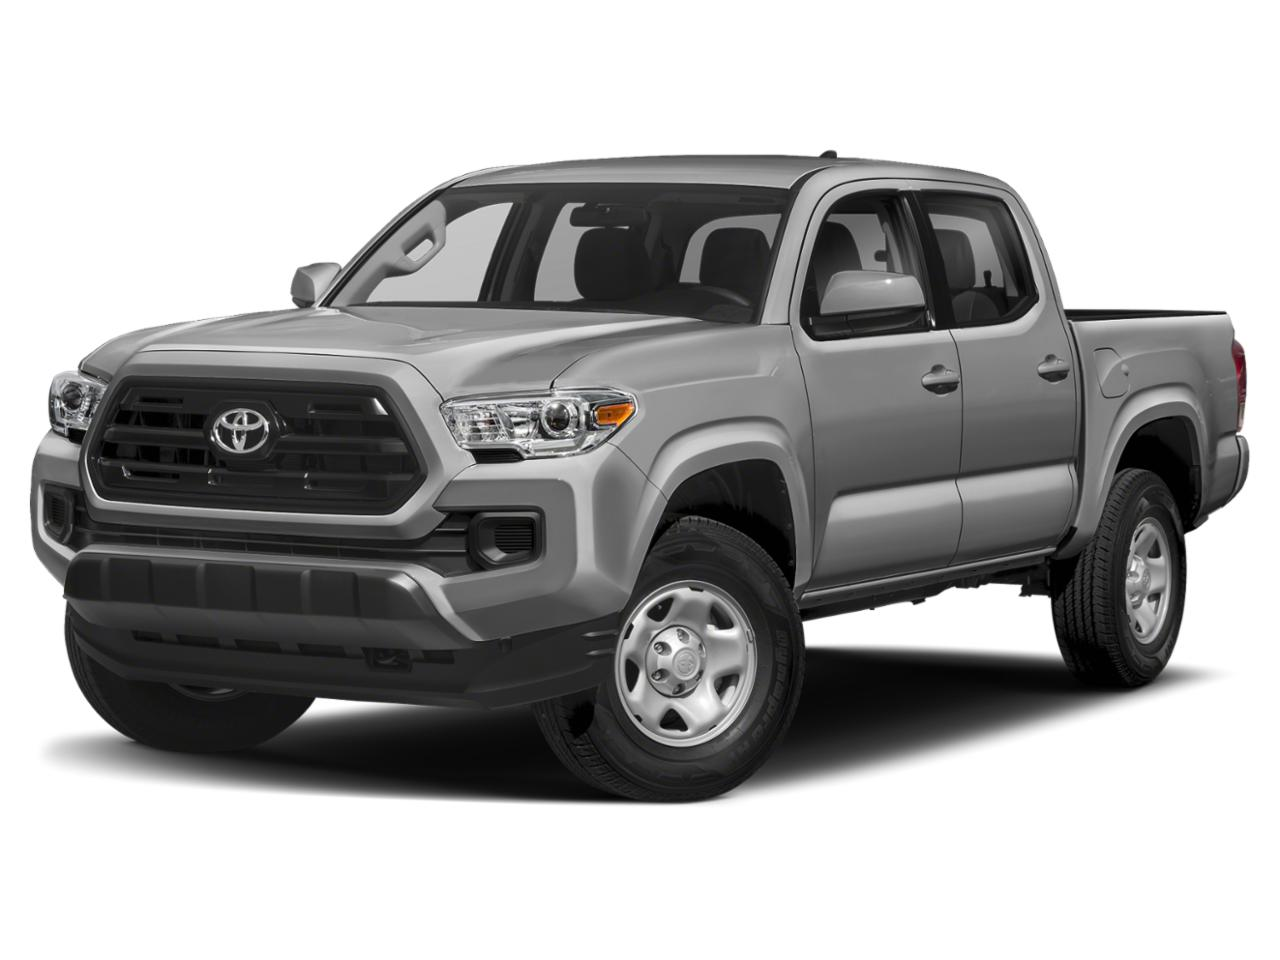 2018 Toyota Tacoma Vehicle Photo in Prescott, AZ 86305